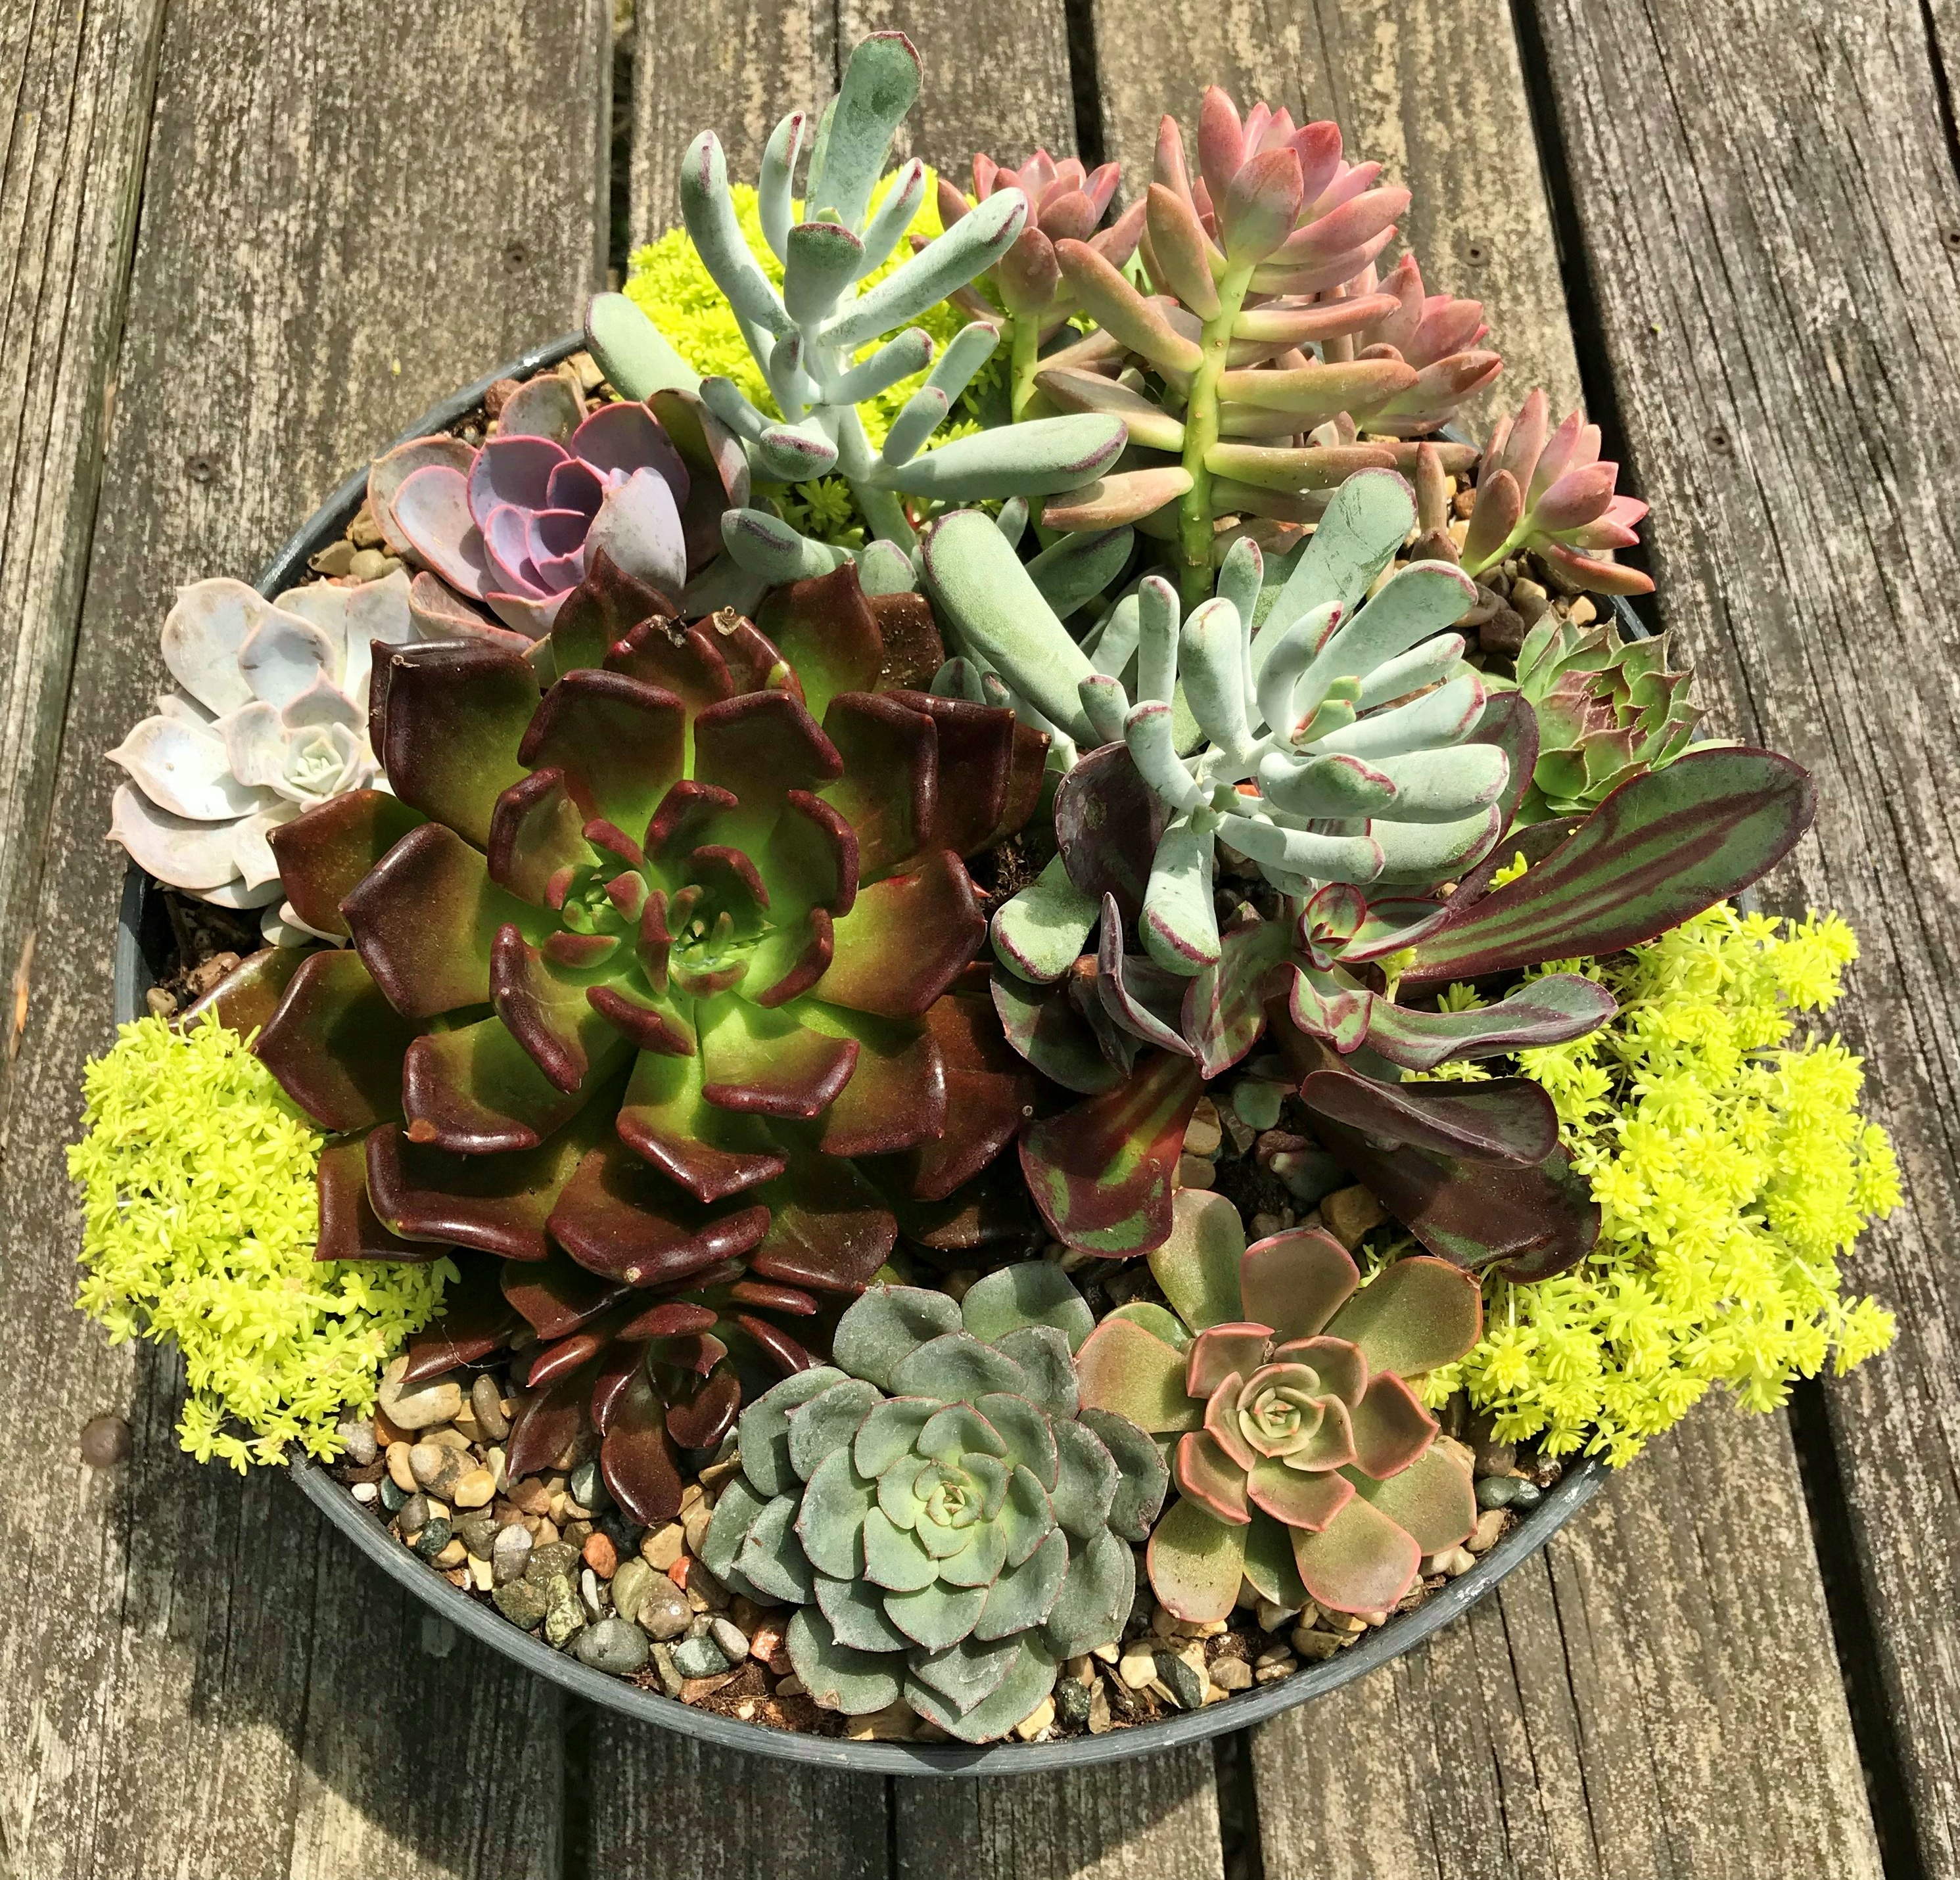 Succulent Garden 101 with Potting - Graf Growers